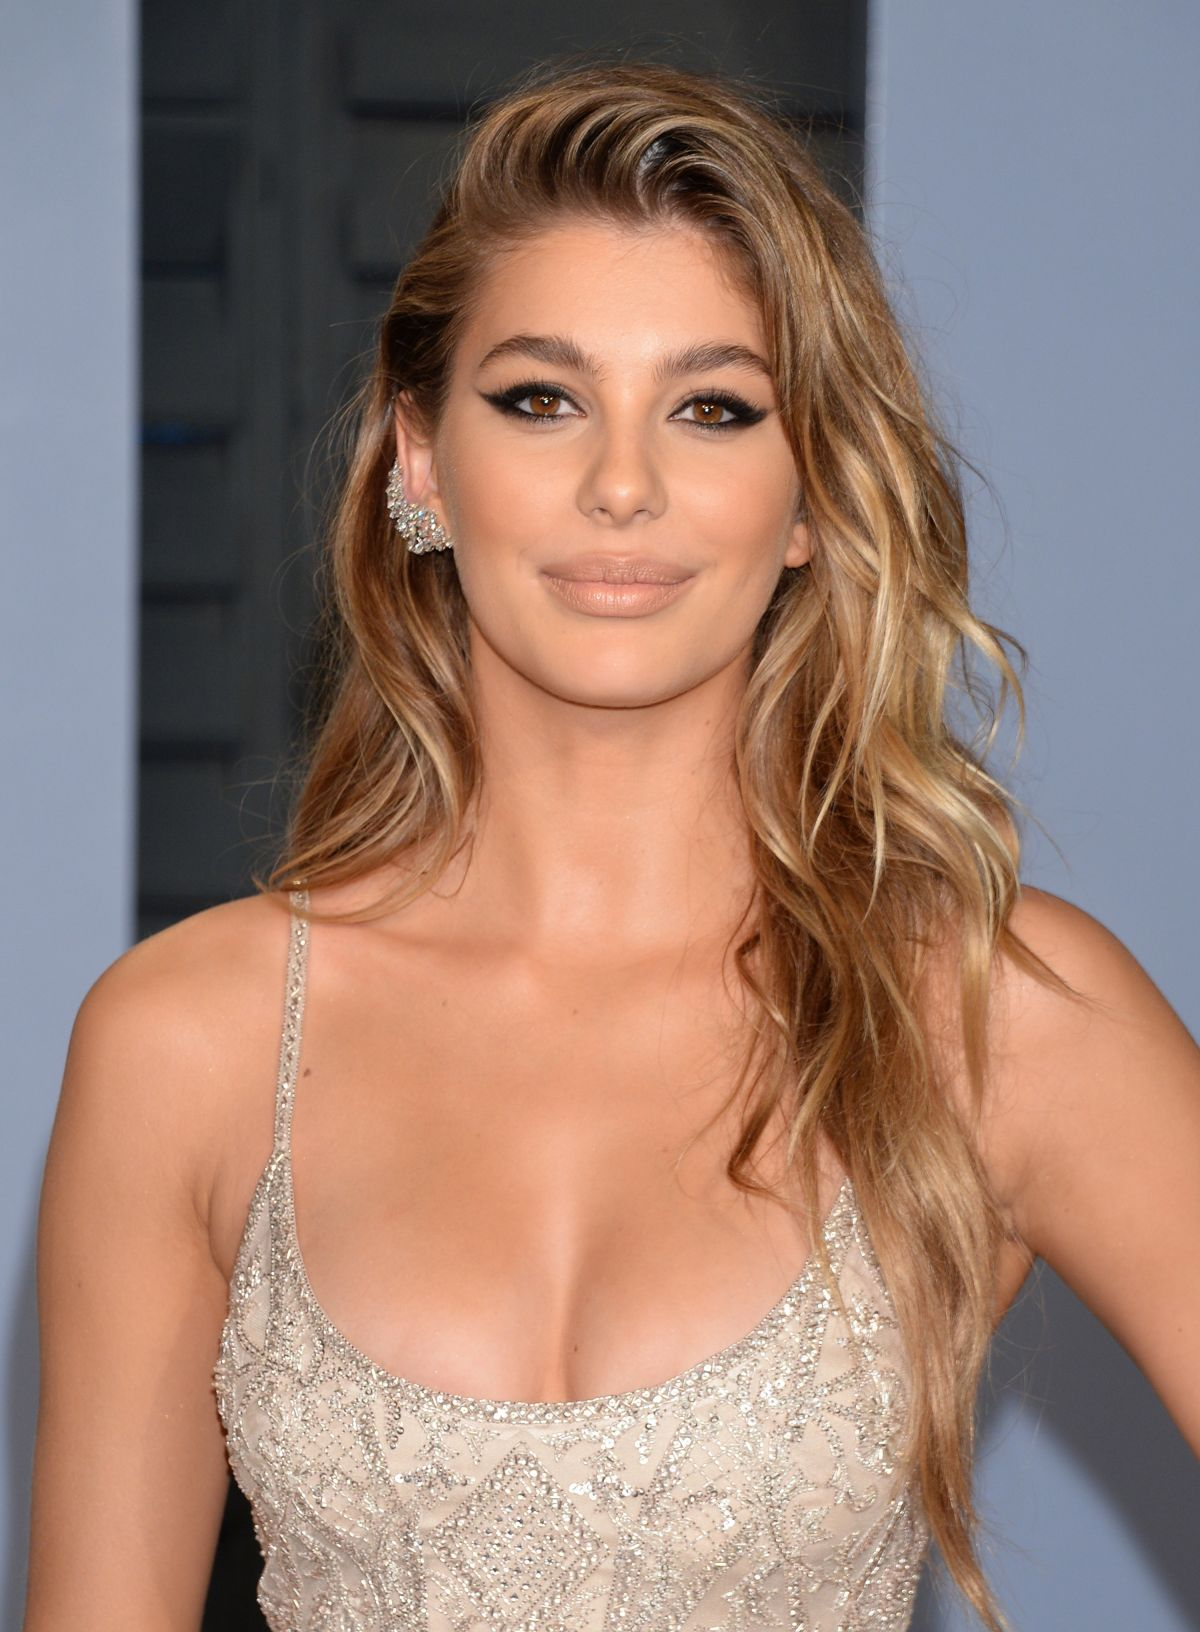 Camila Morrone nudes (73 foto and video), Pussy, Leaked, Instagram, braless 2006